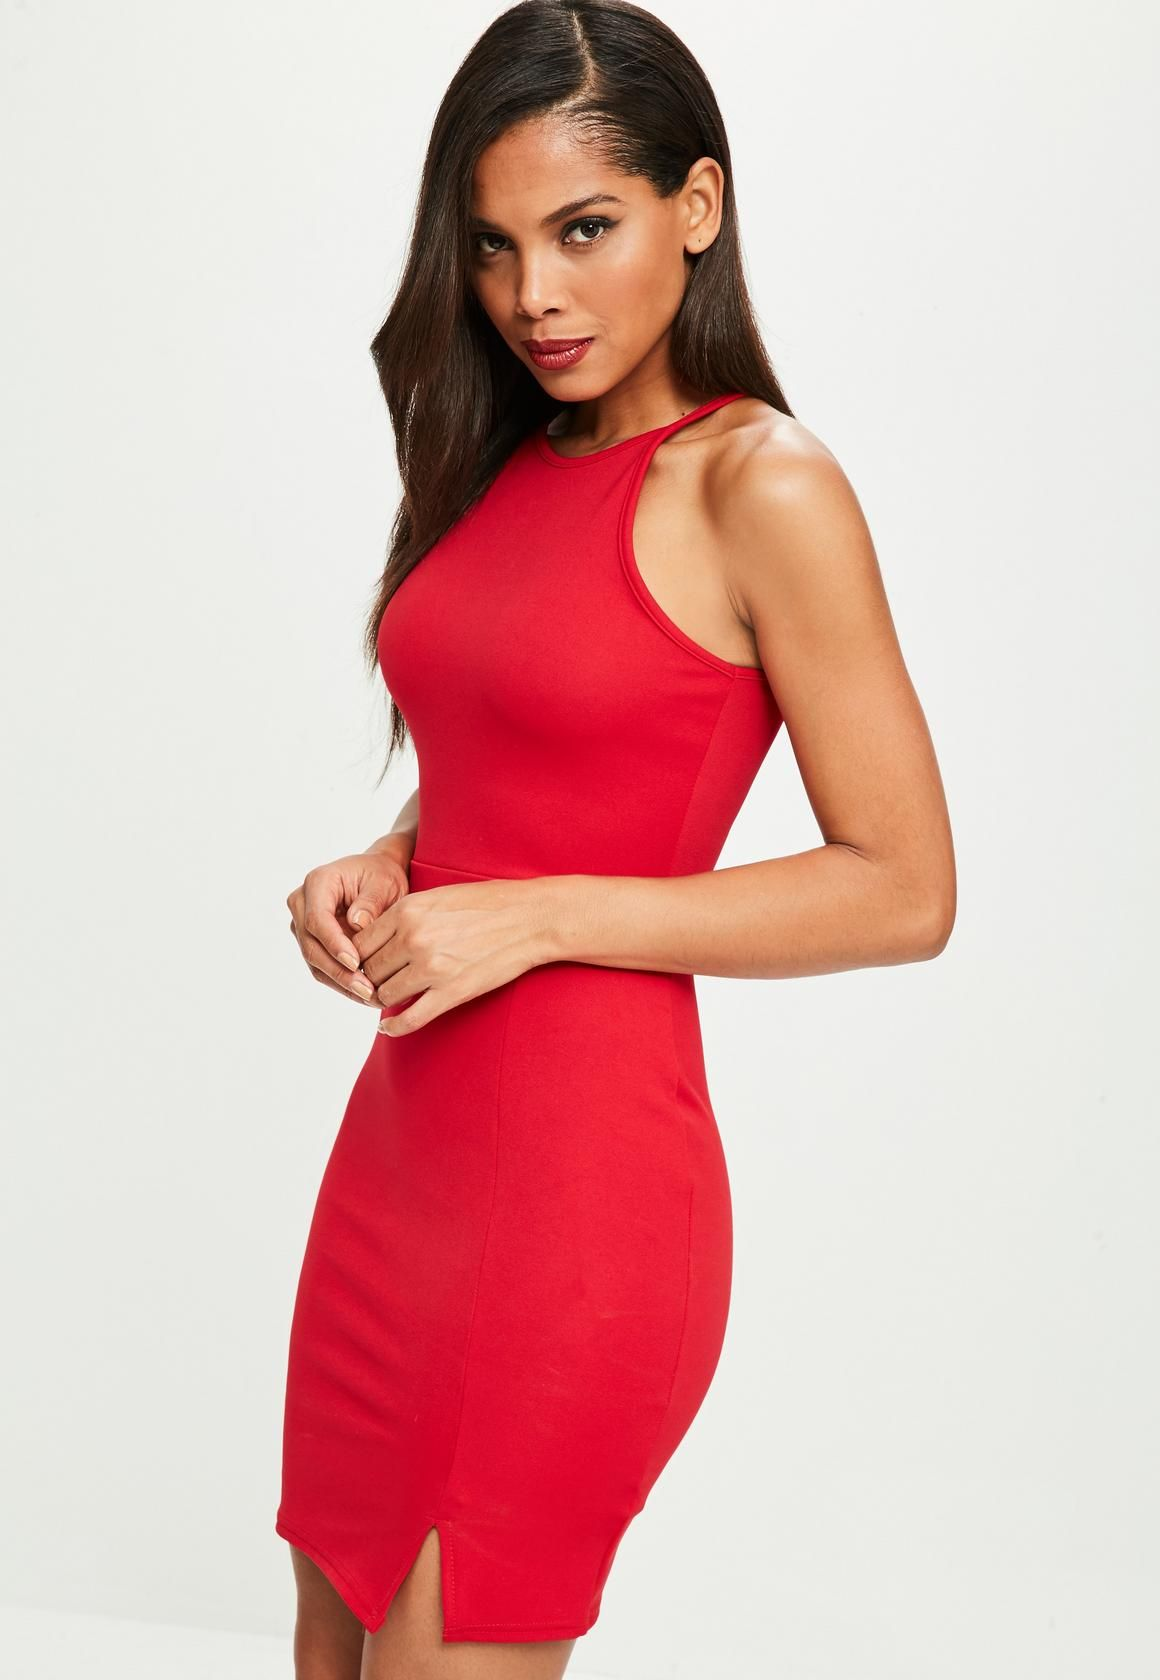 Red dress in a mini length s style neck and split hem Dream